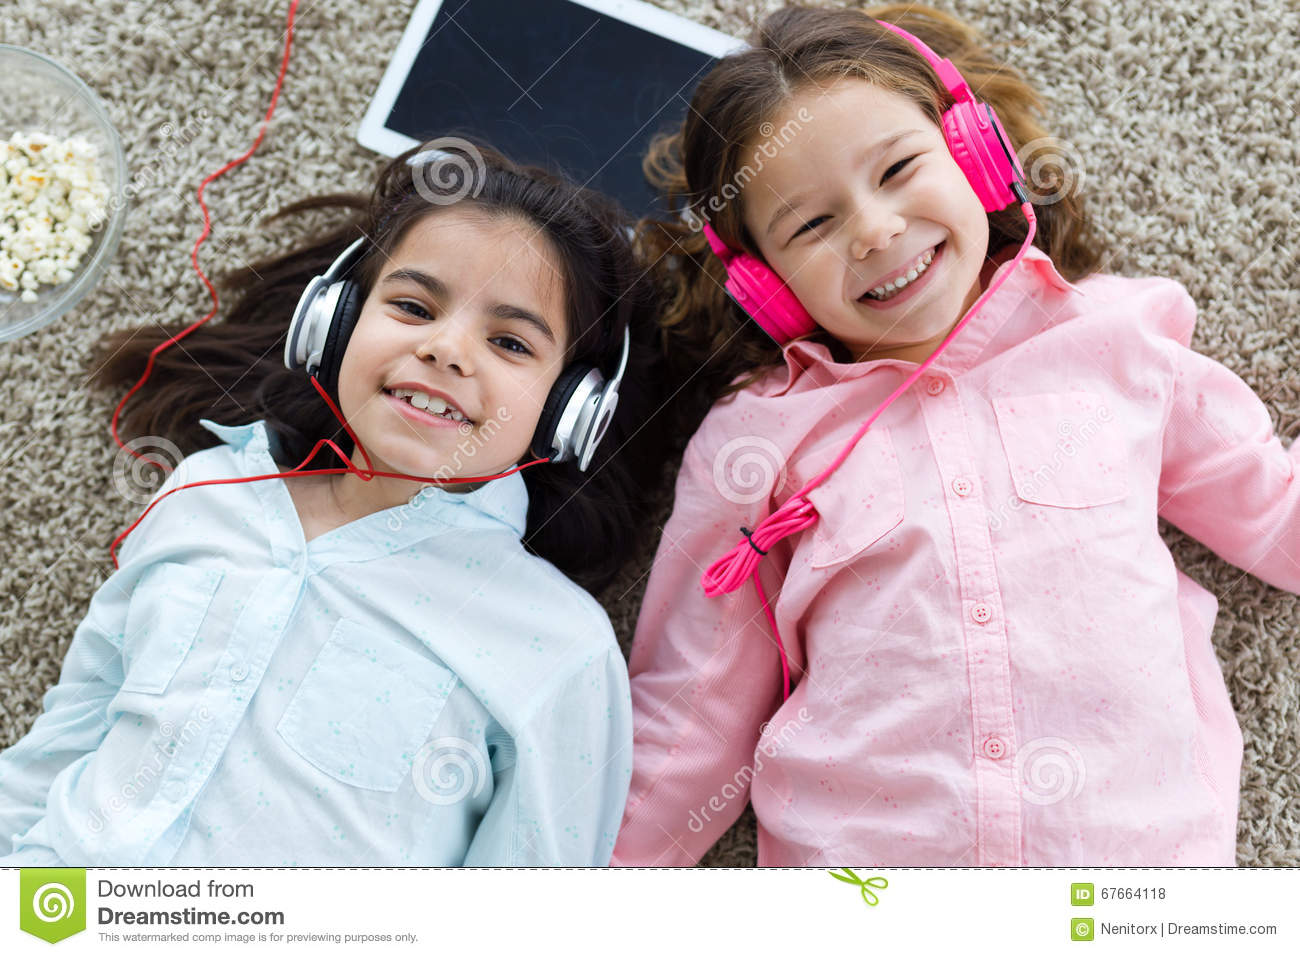 Download Beautiful Young Sisters Listening To Music With Digital Tablet A Stock Photo - Image of people, family: 67664118